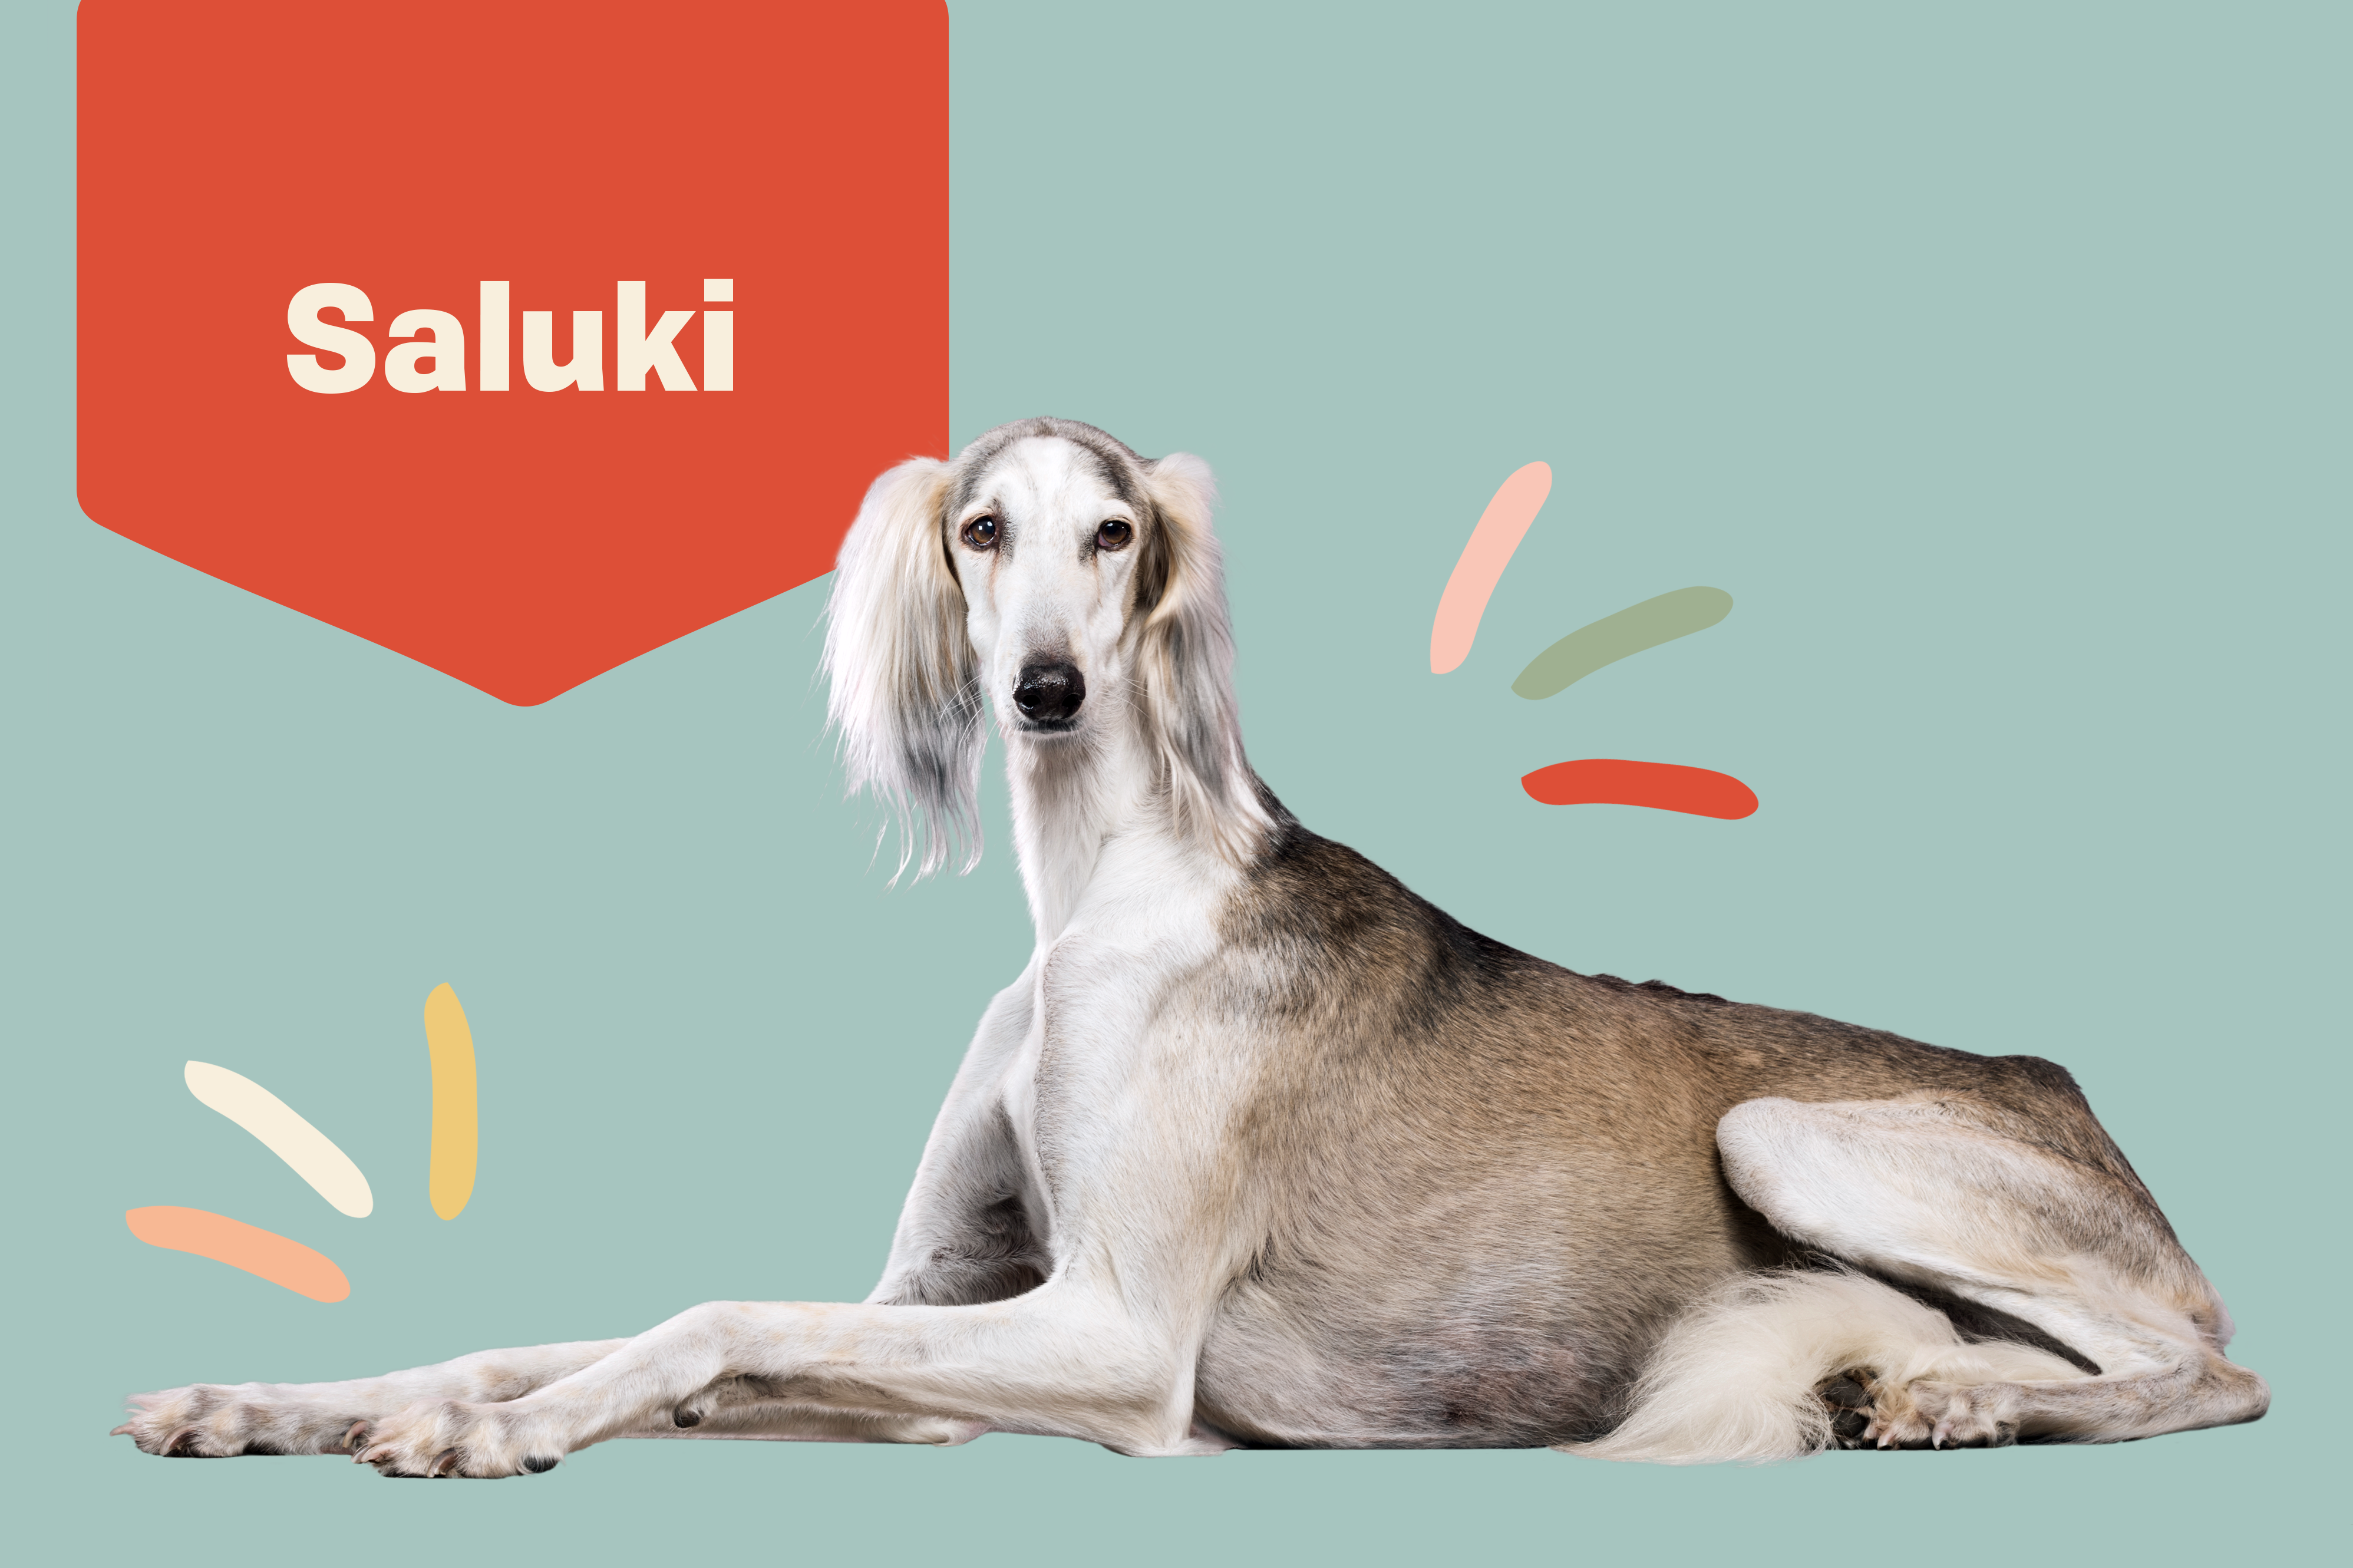 Saluki adult dog portrait with illustrated embellishments